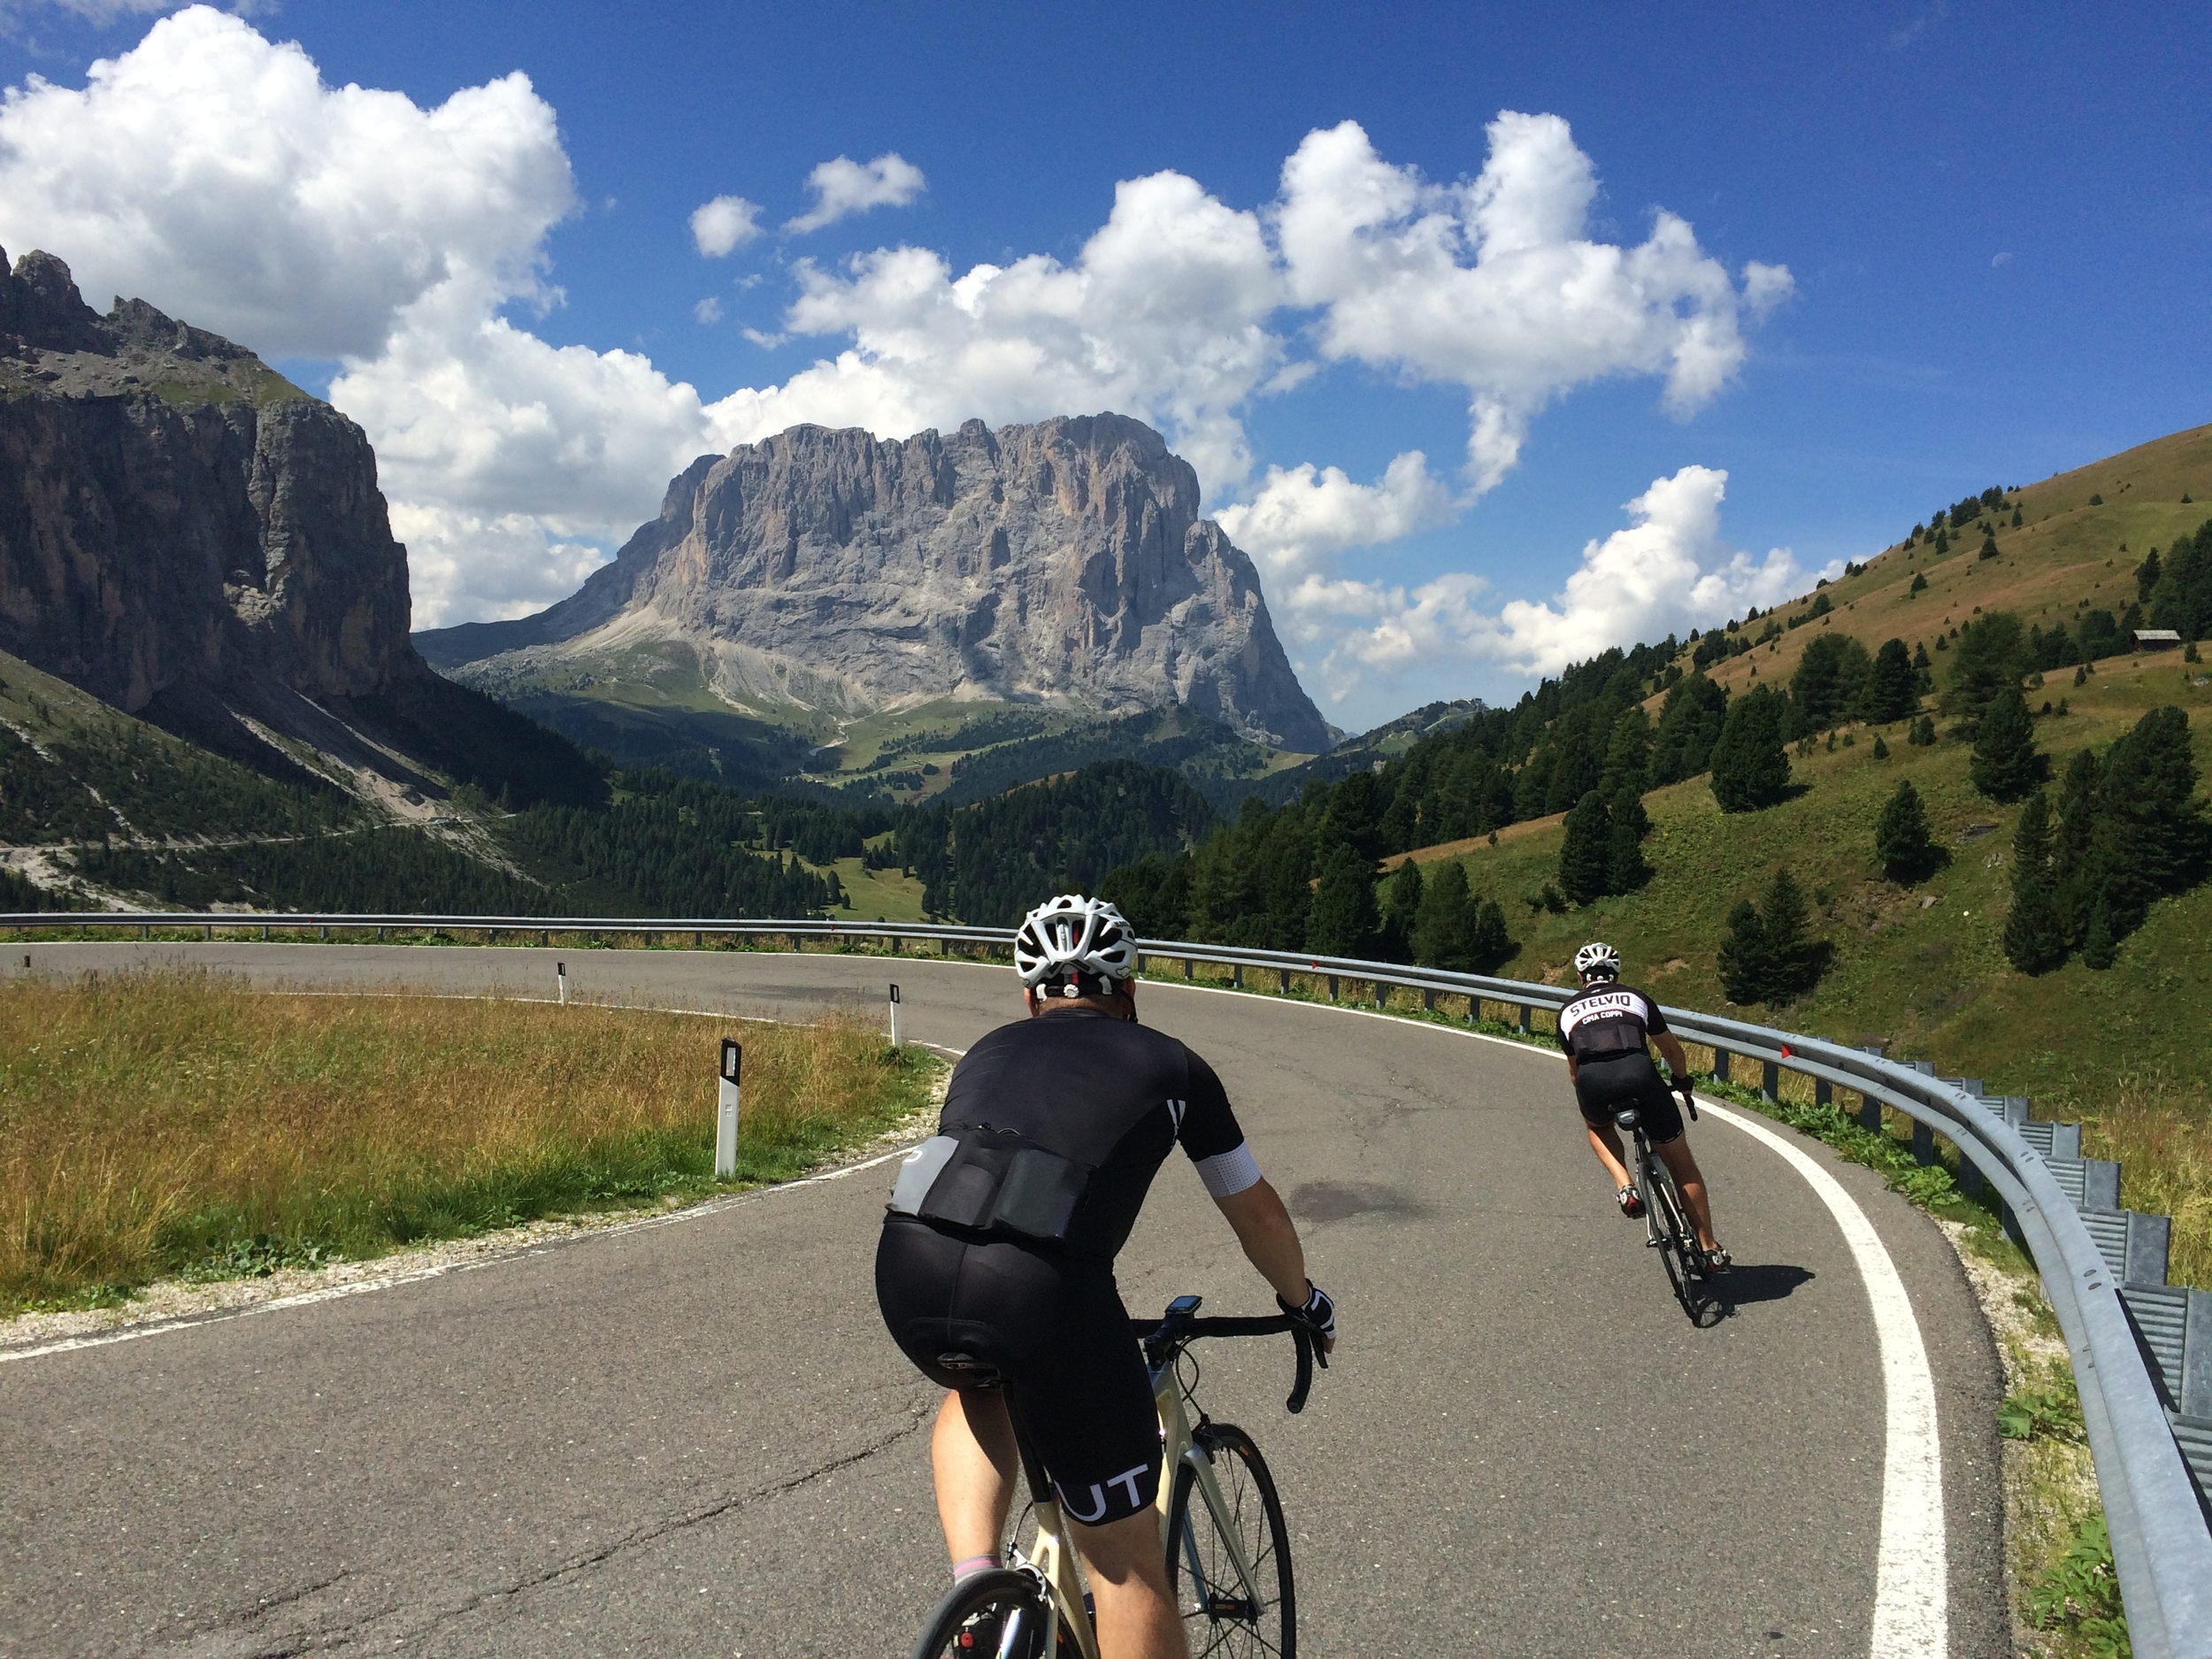 Descending the spectacular Passo Gardena in the Dolomites